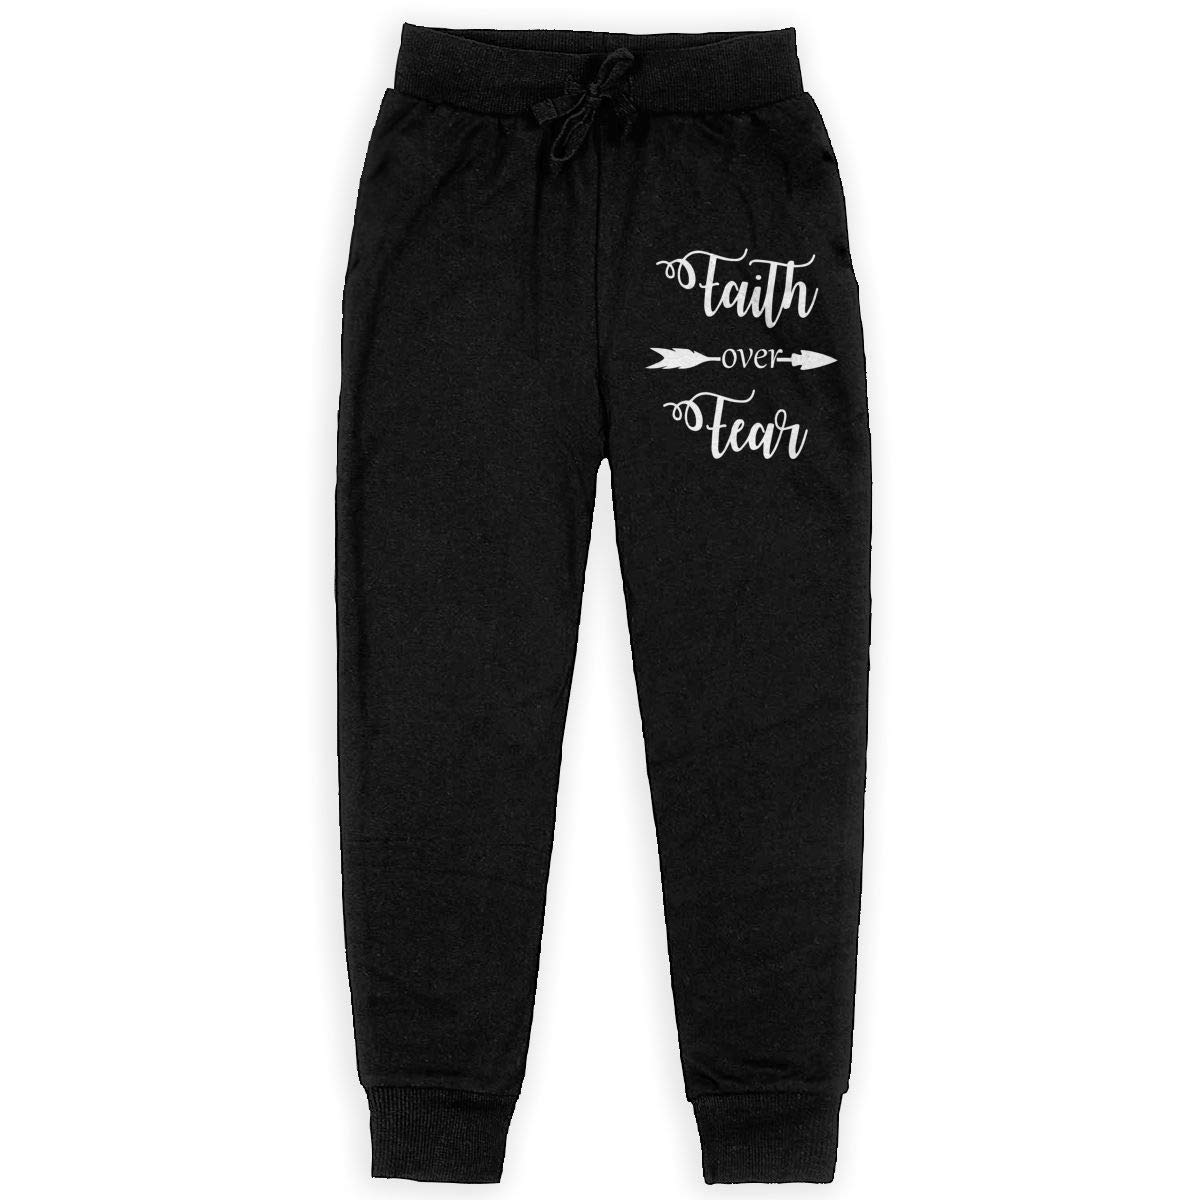 Faith Over Fear Soft/Cozy Sweatpants Girls Active Pants for Teen Girls  Clothing Boys